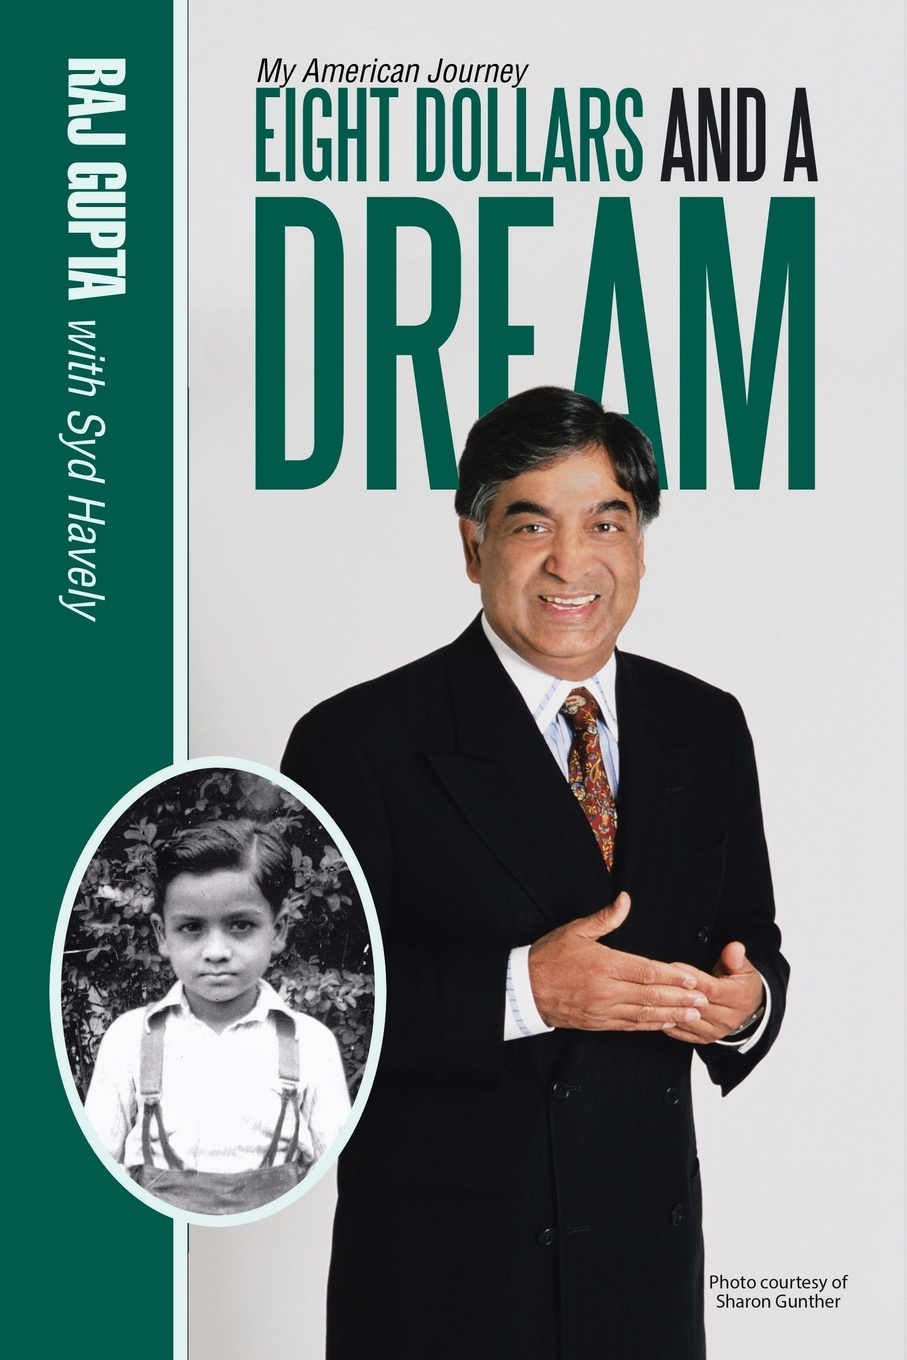 Raj Gupta, Syd Havely Eight Dollars and A Dream. My American Journey